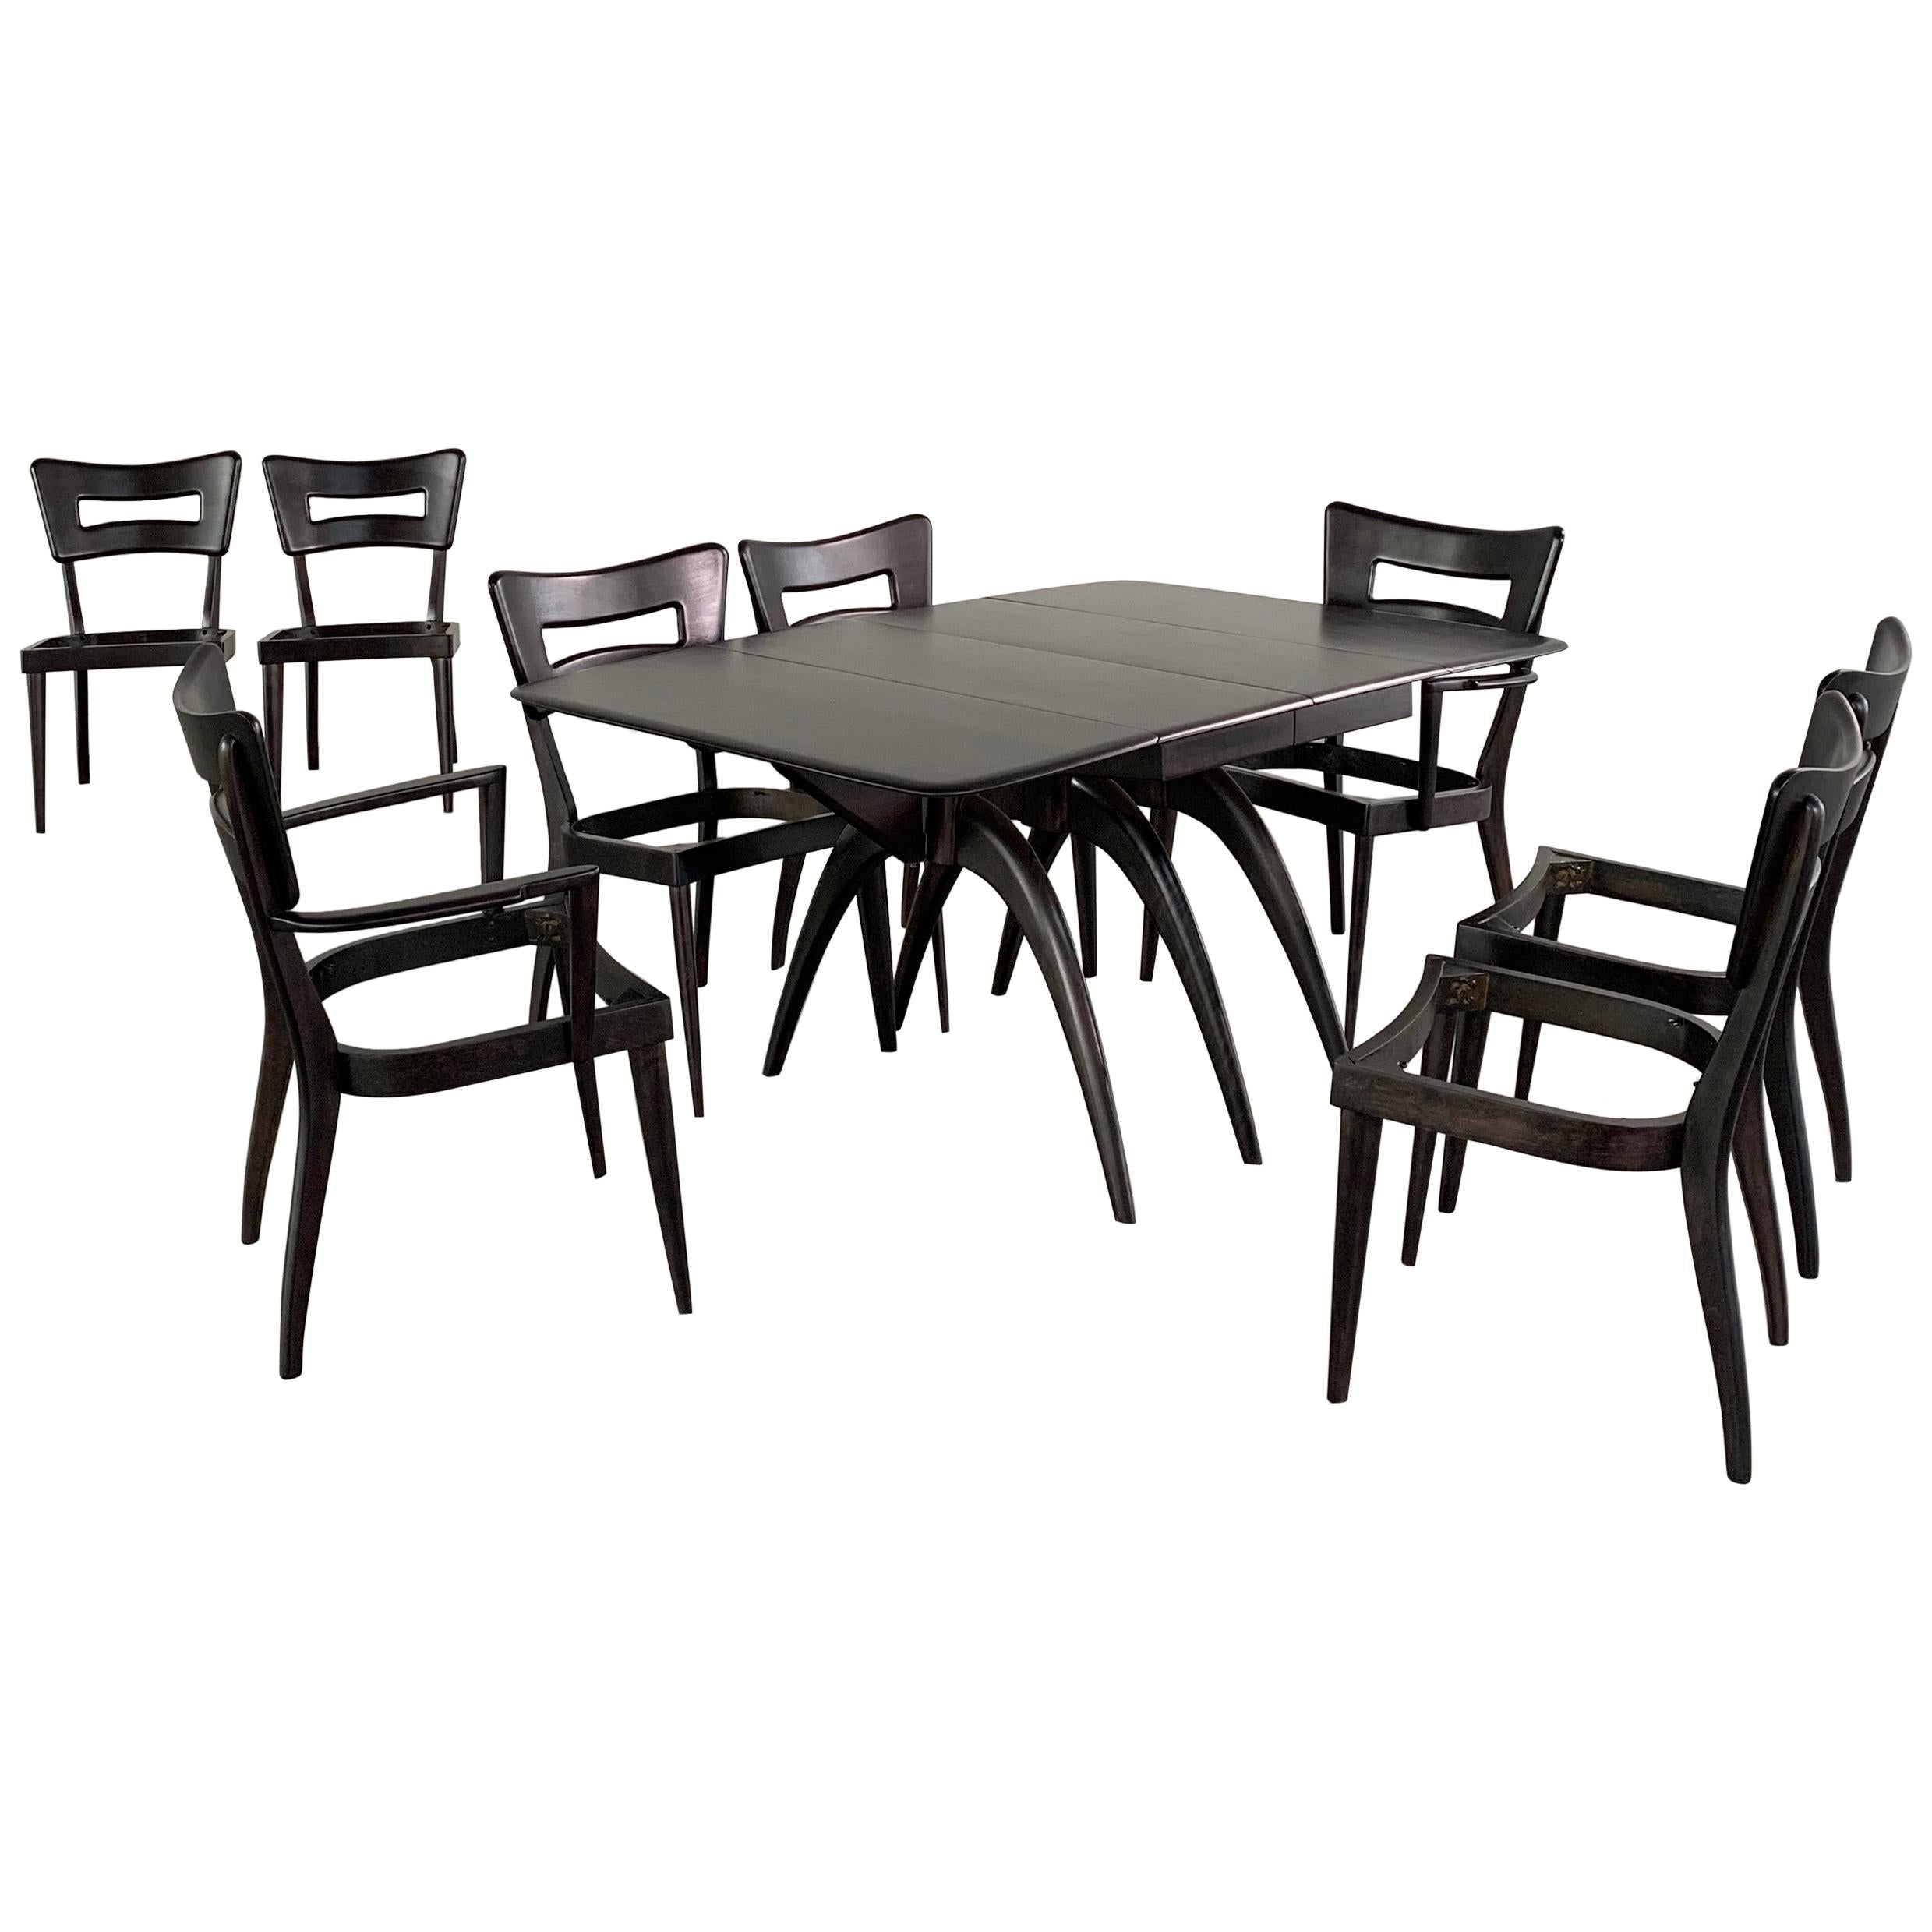 Wishbone Dining Chair Heywood Wakefield Ebonized Wishbone Dogbone Dining Room Set For Eight